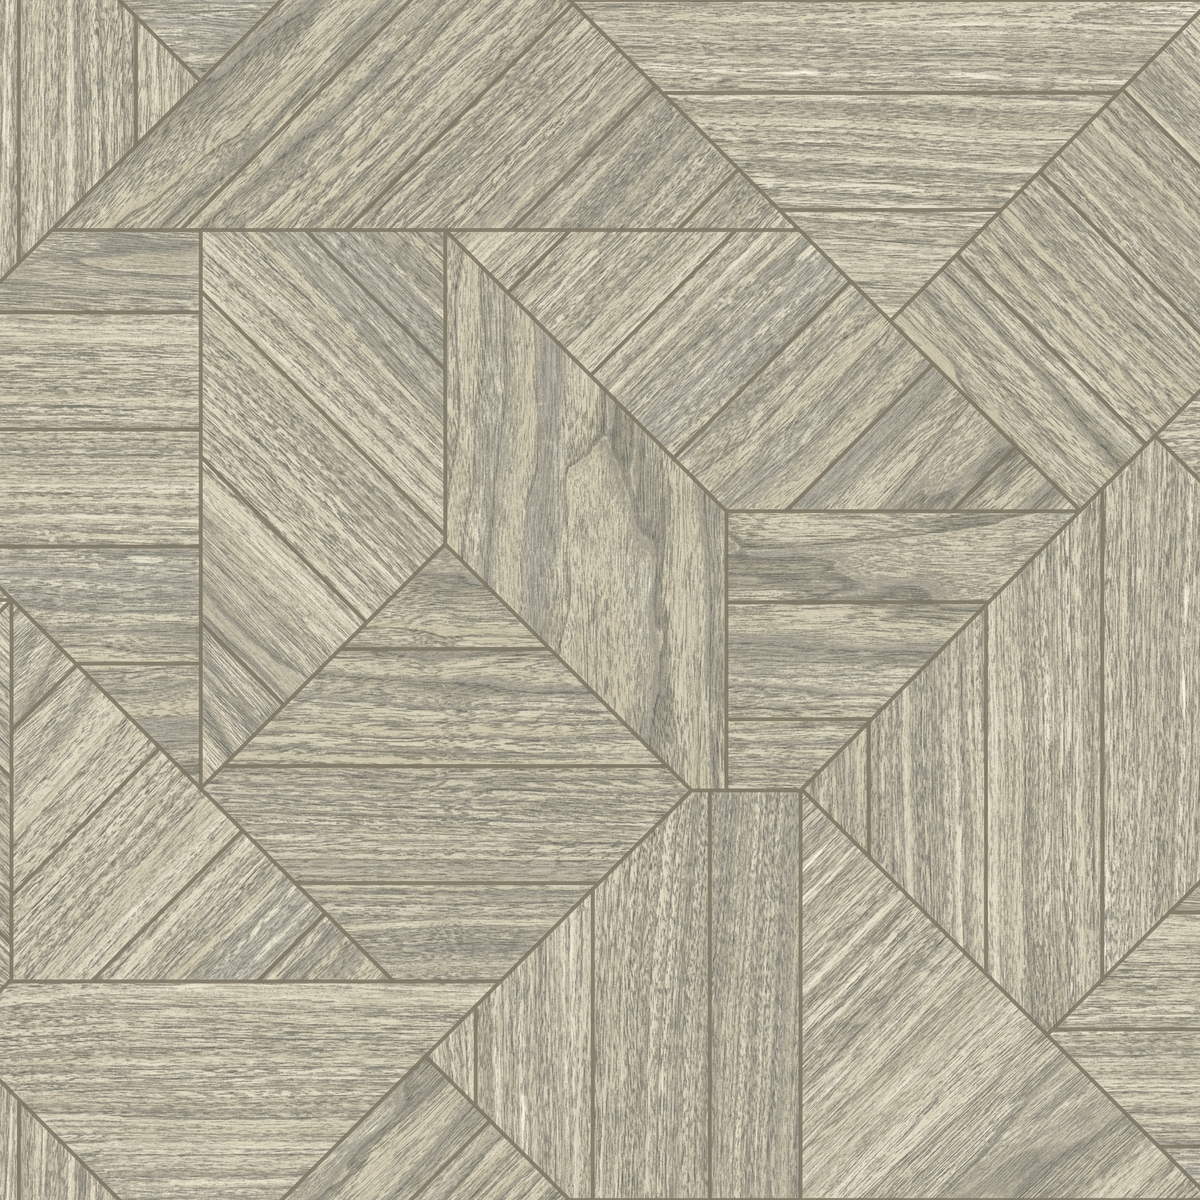 Details About York Wallcoverings Ho3371 Wood Geometric Wallpaper Tailored Collection Grey